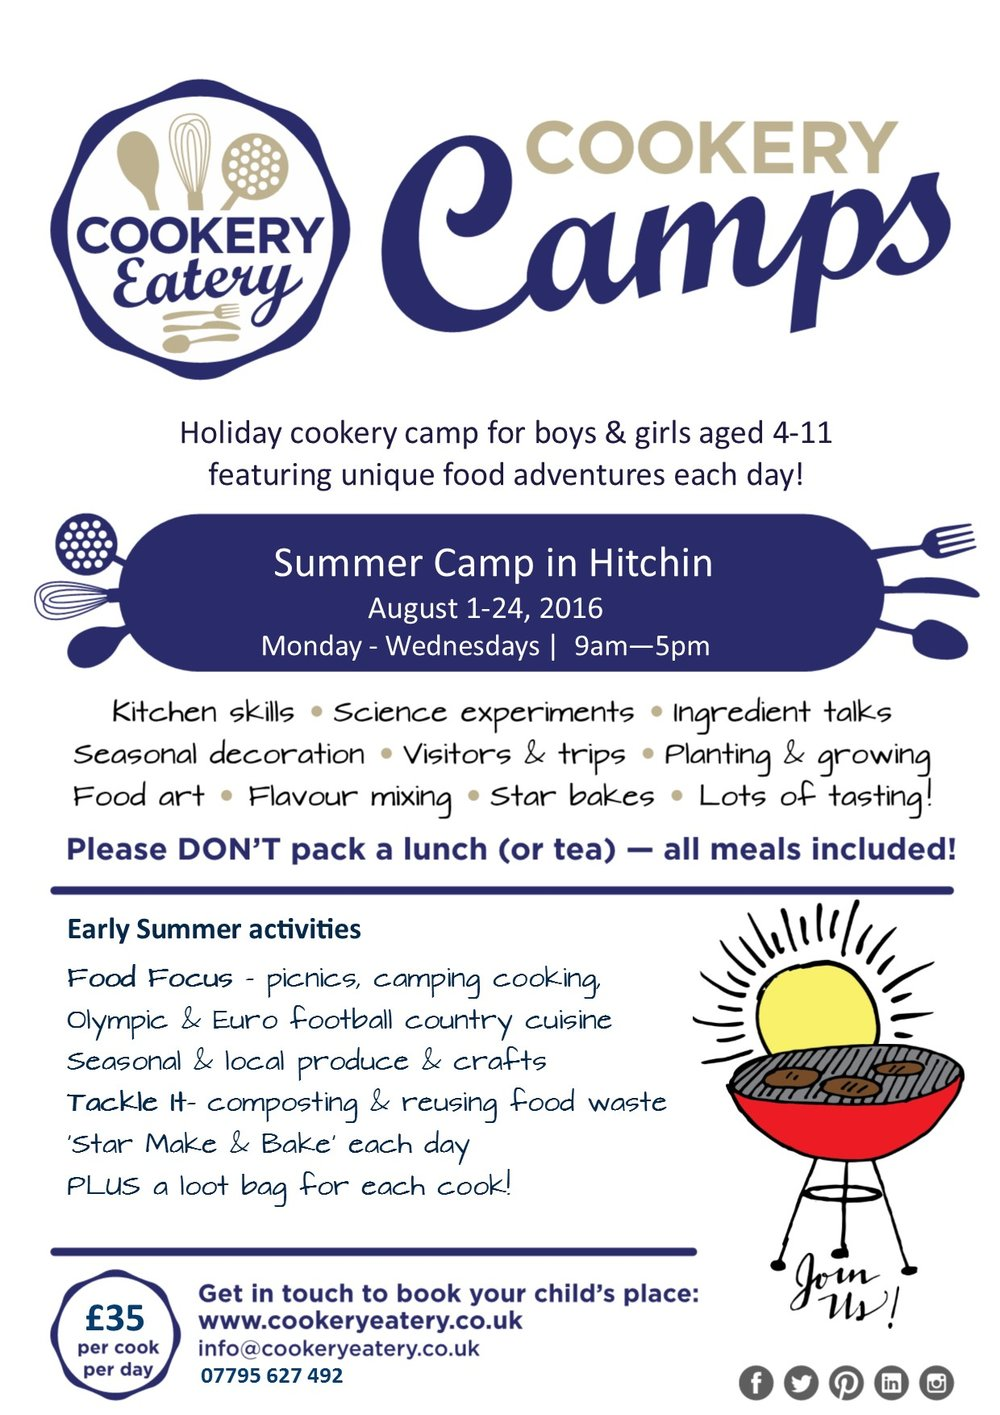 Cookery Camp.Summer 2016.Hitchin.FLYER.jpg